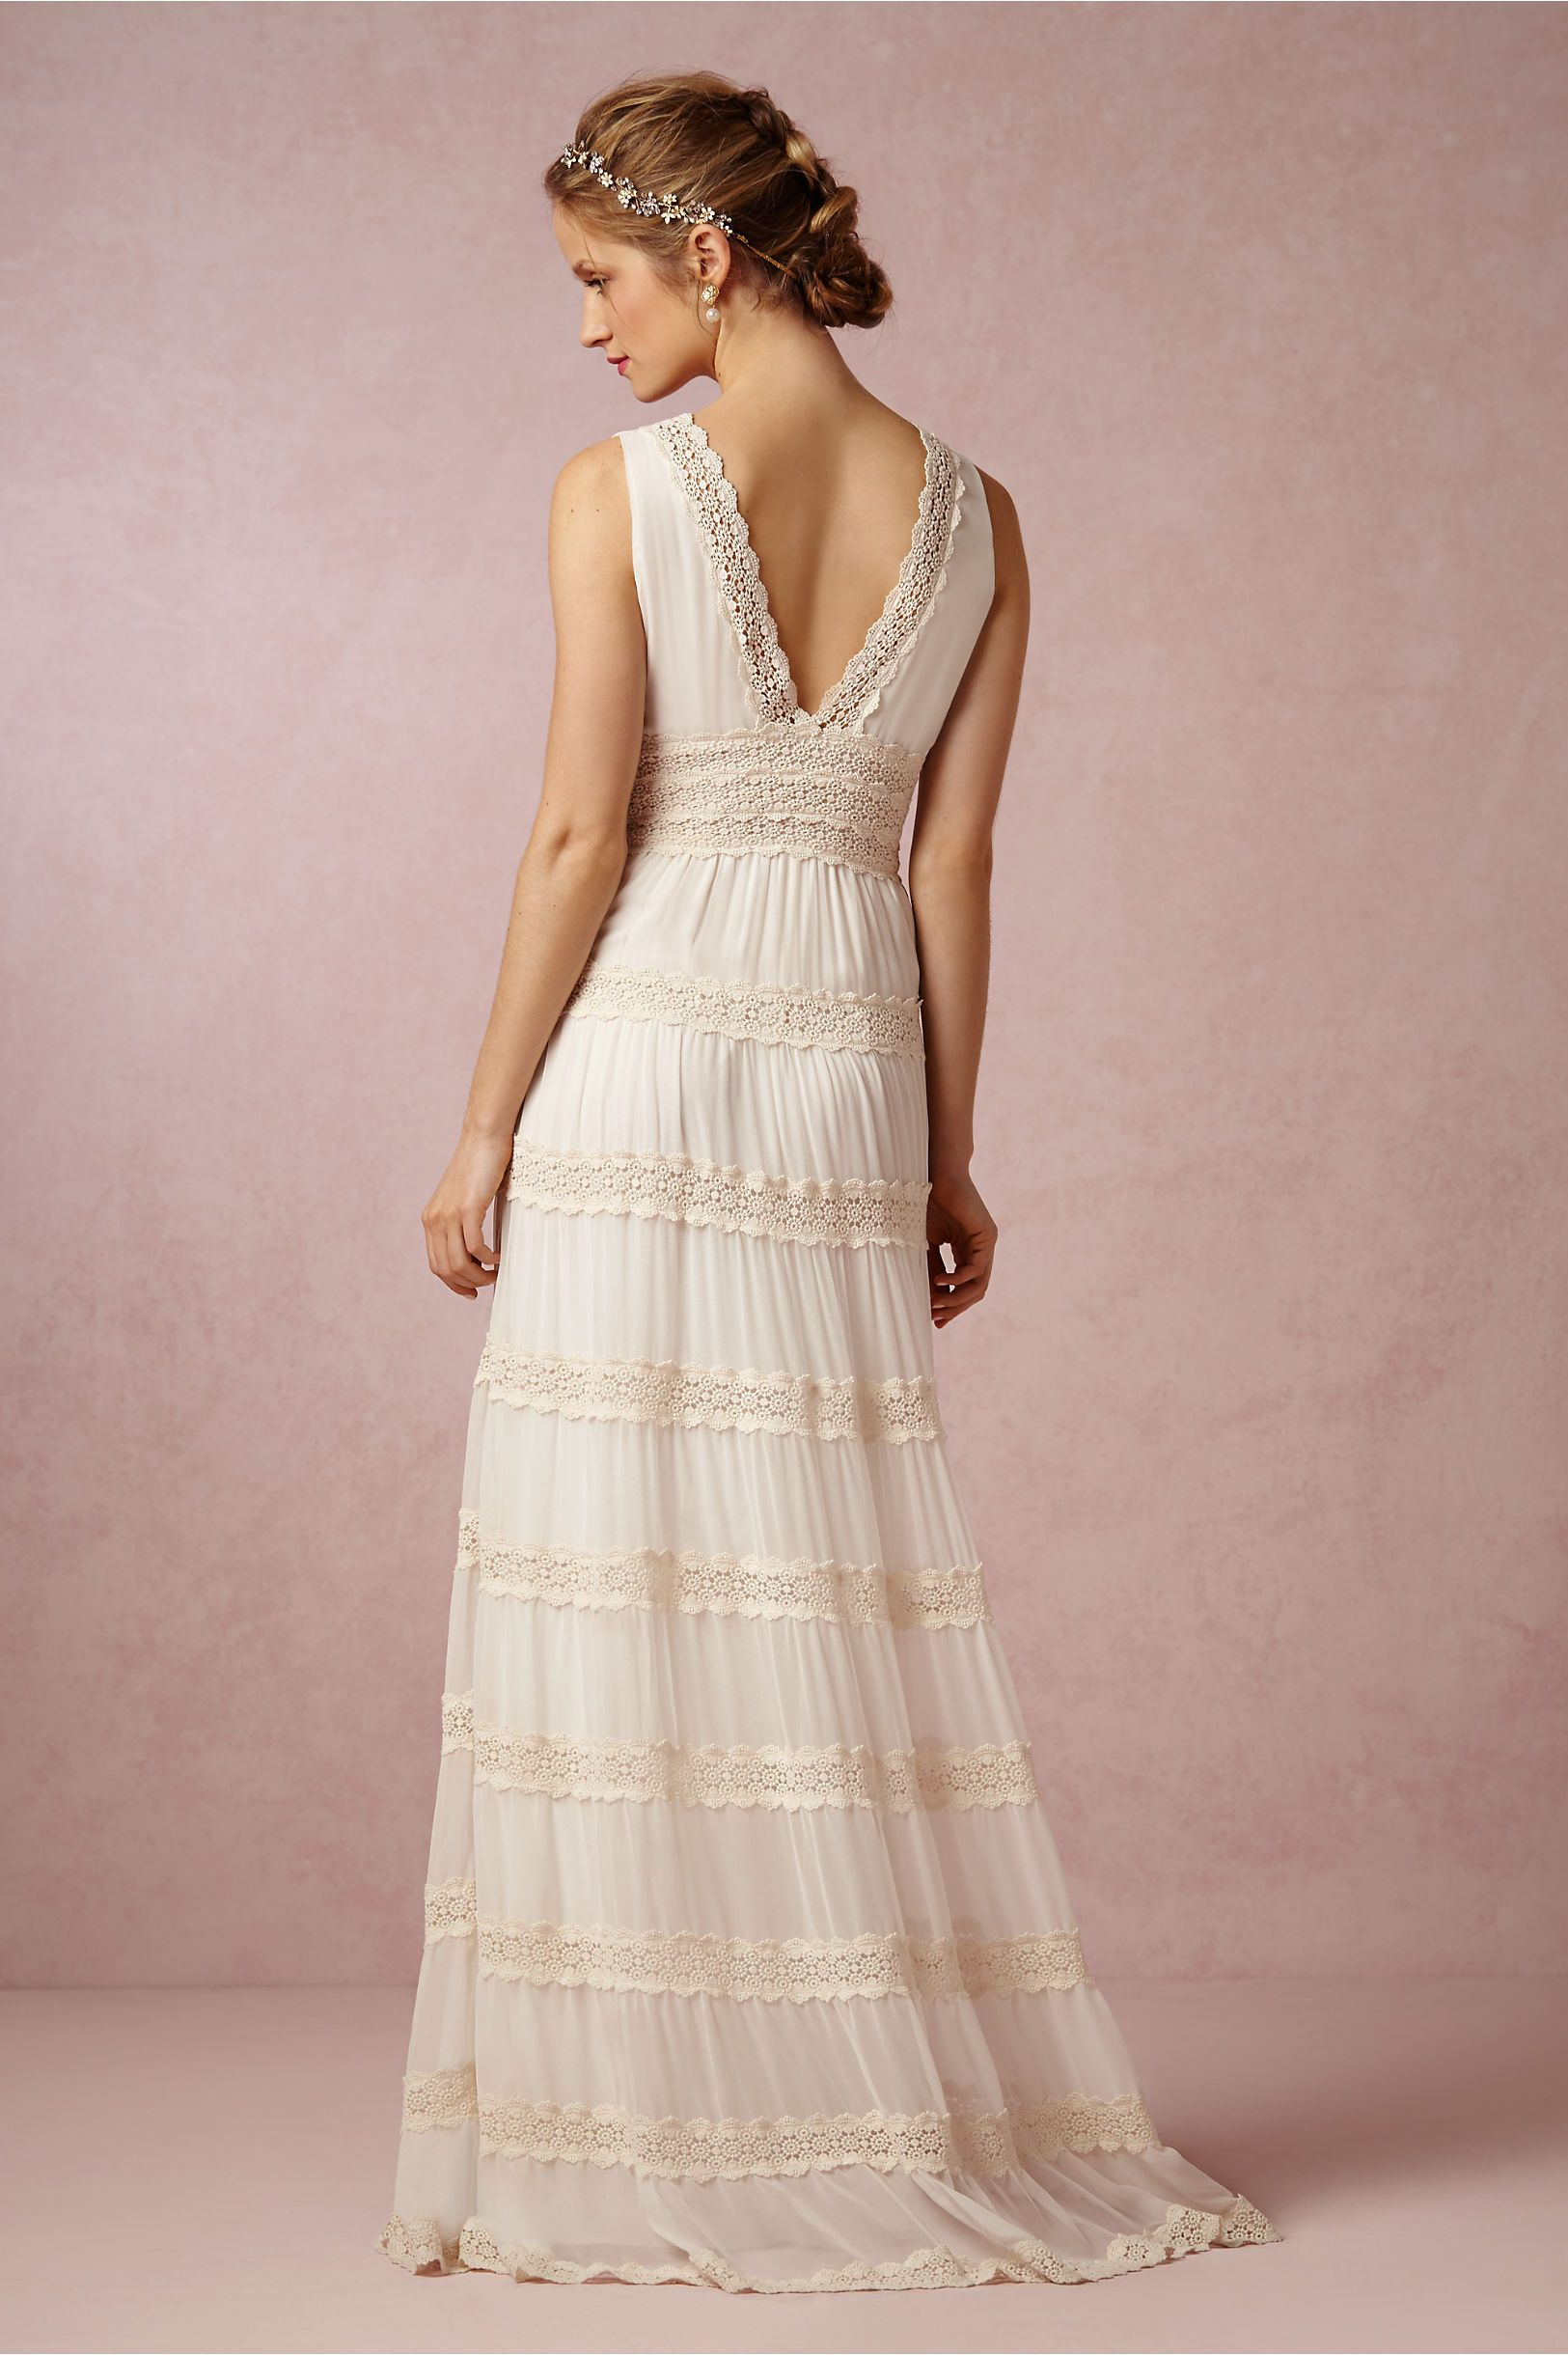 Rosemary Dress By Kite Erfly For Bhldn Bride Reception Dresses Event Lace